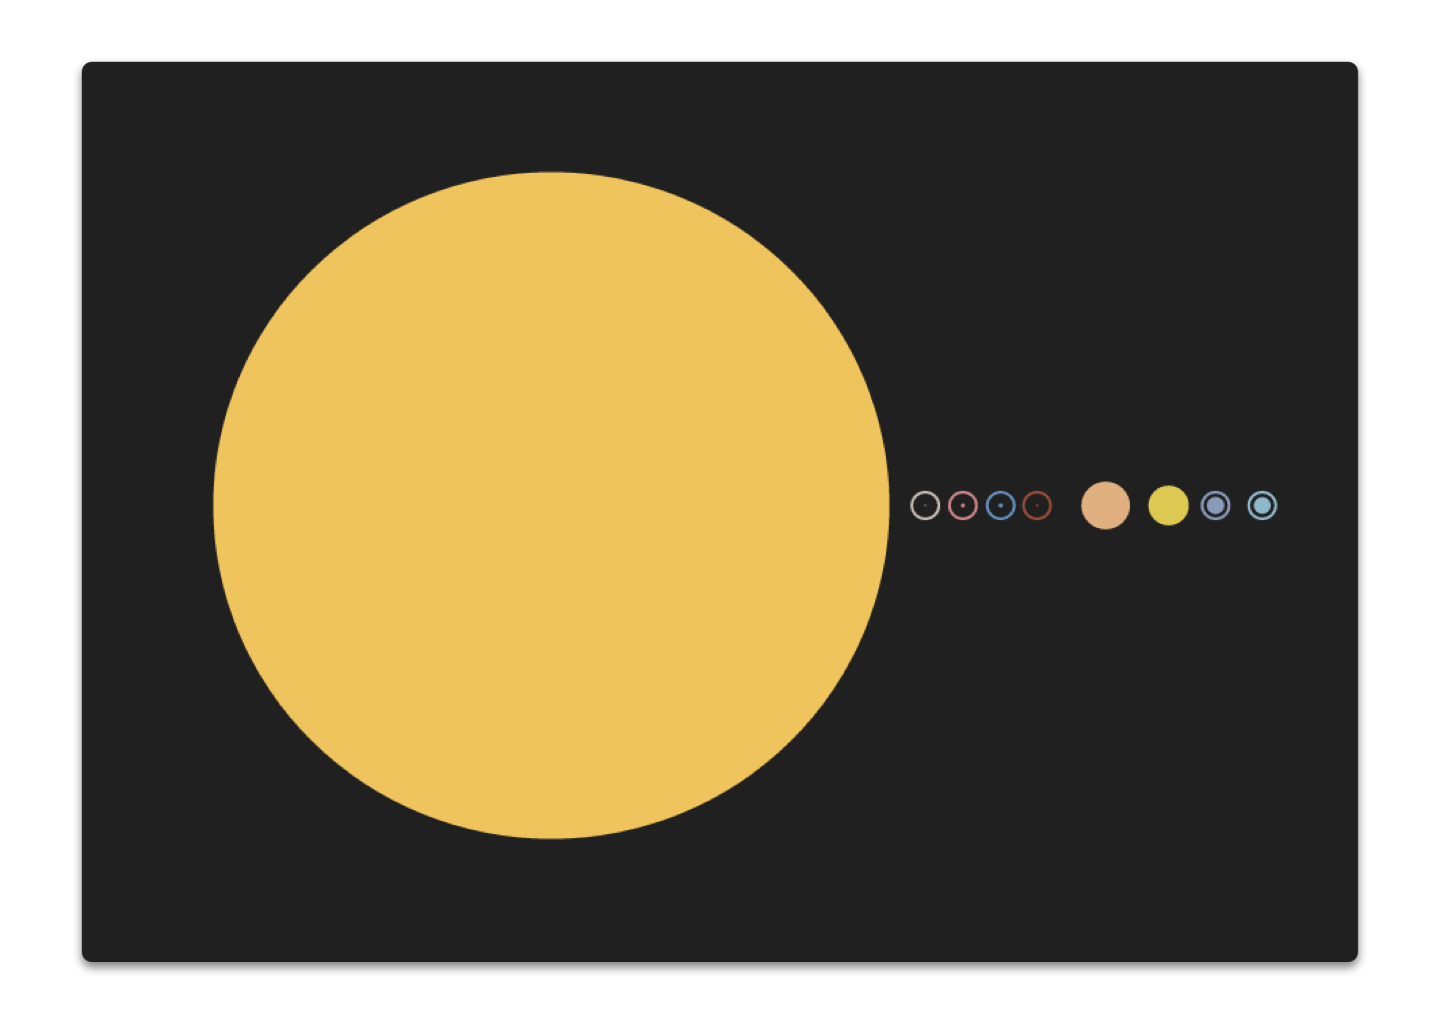 Comparing sizes of solar system